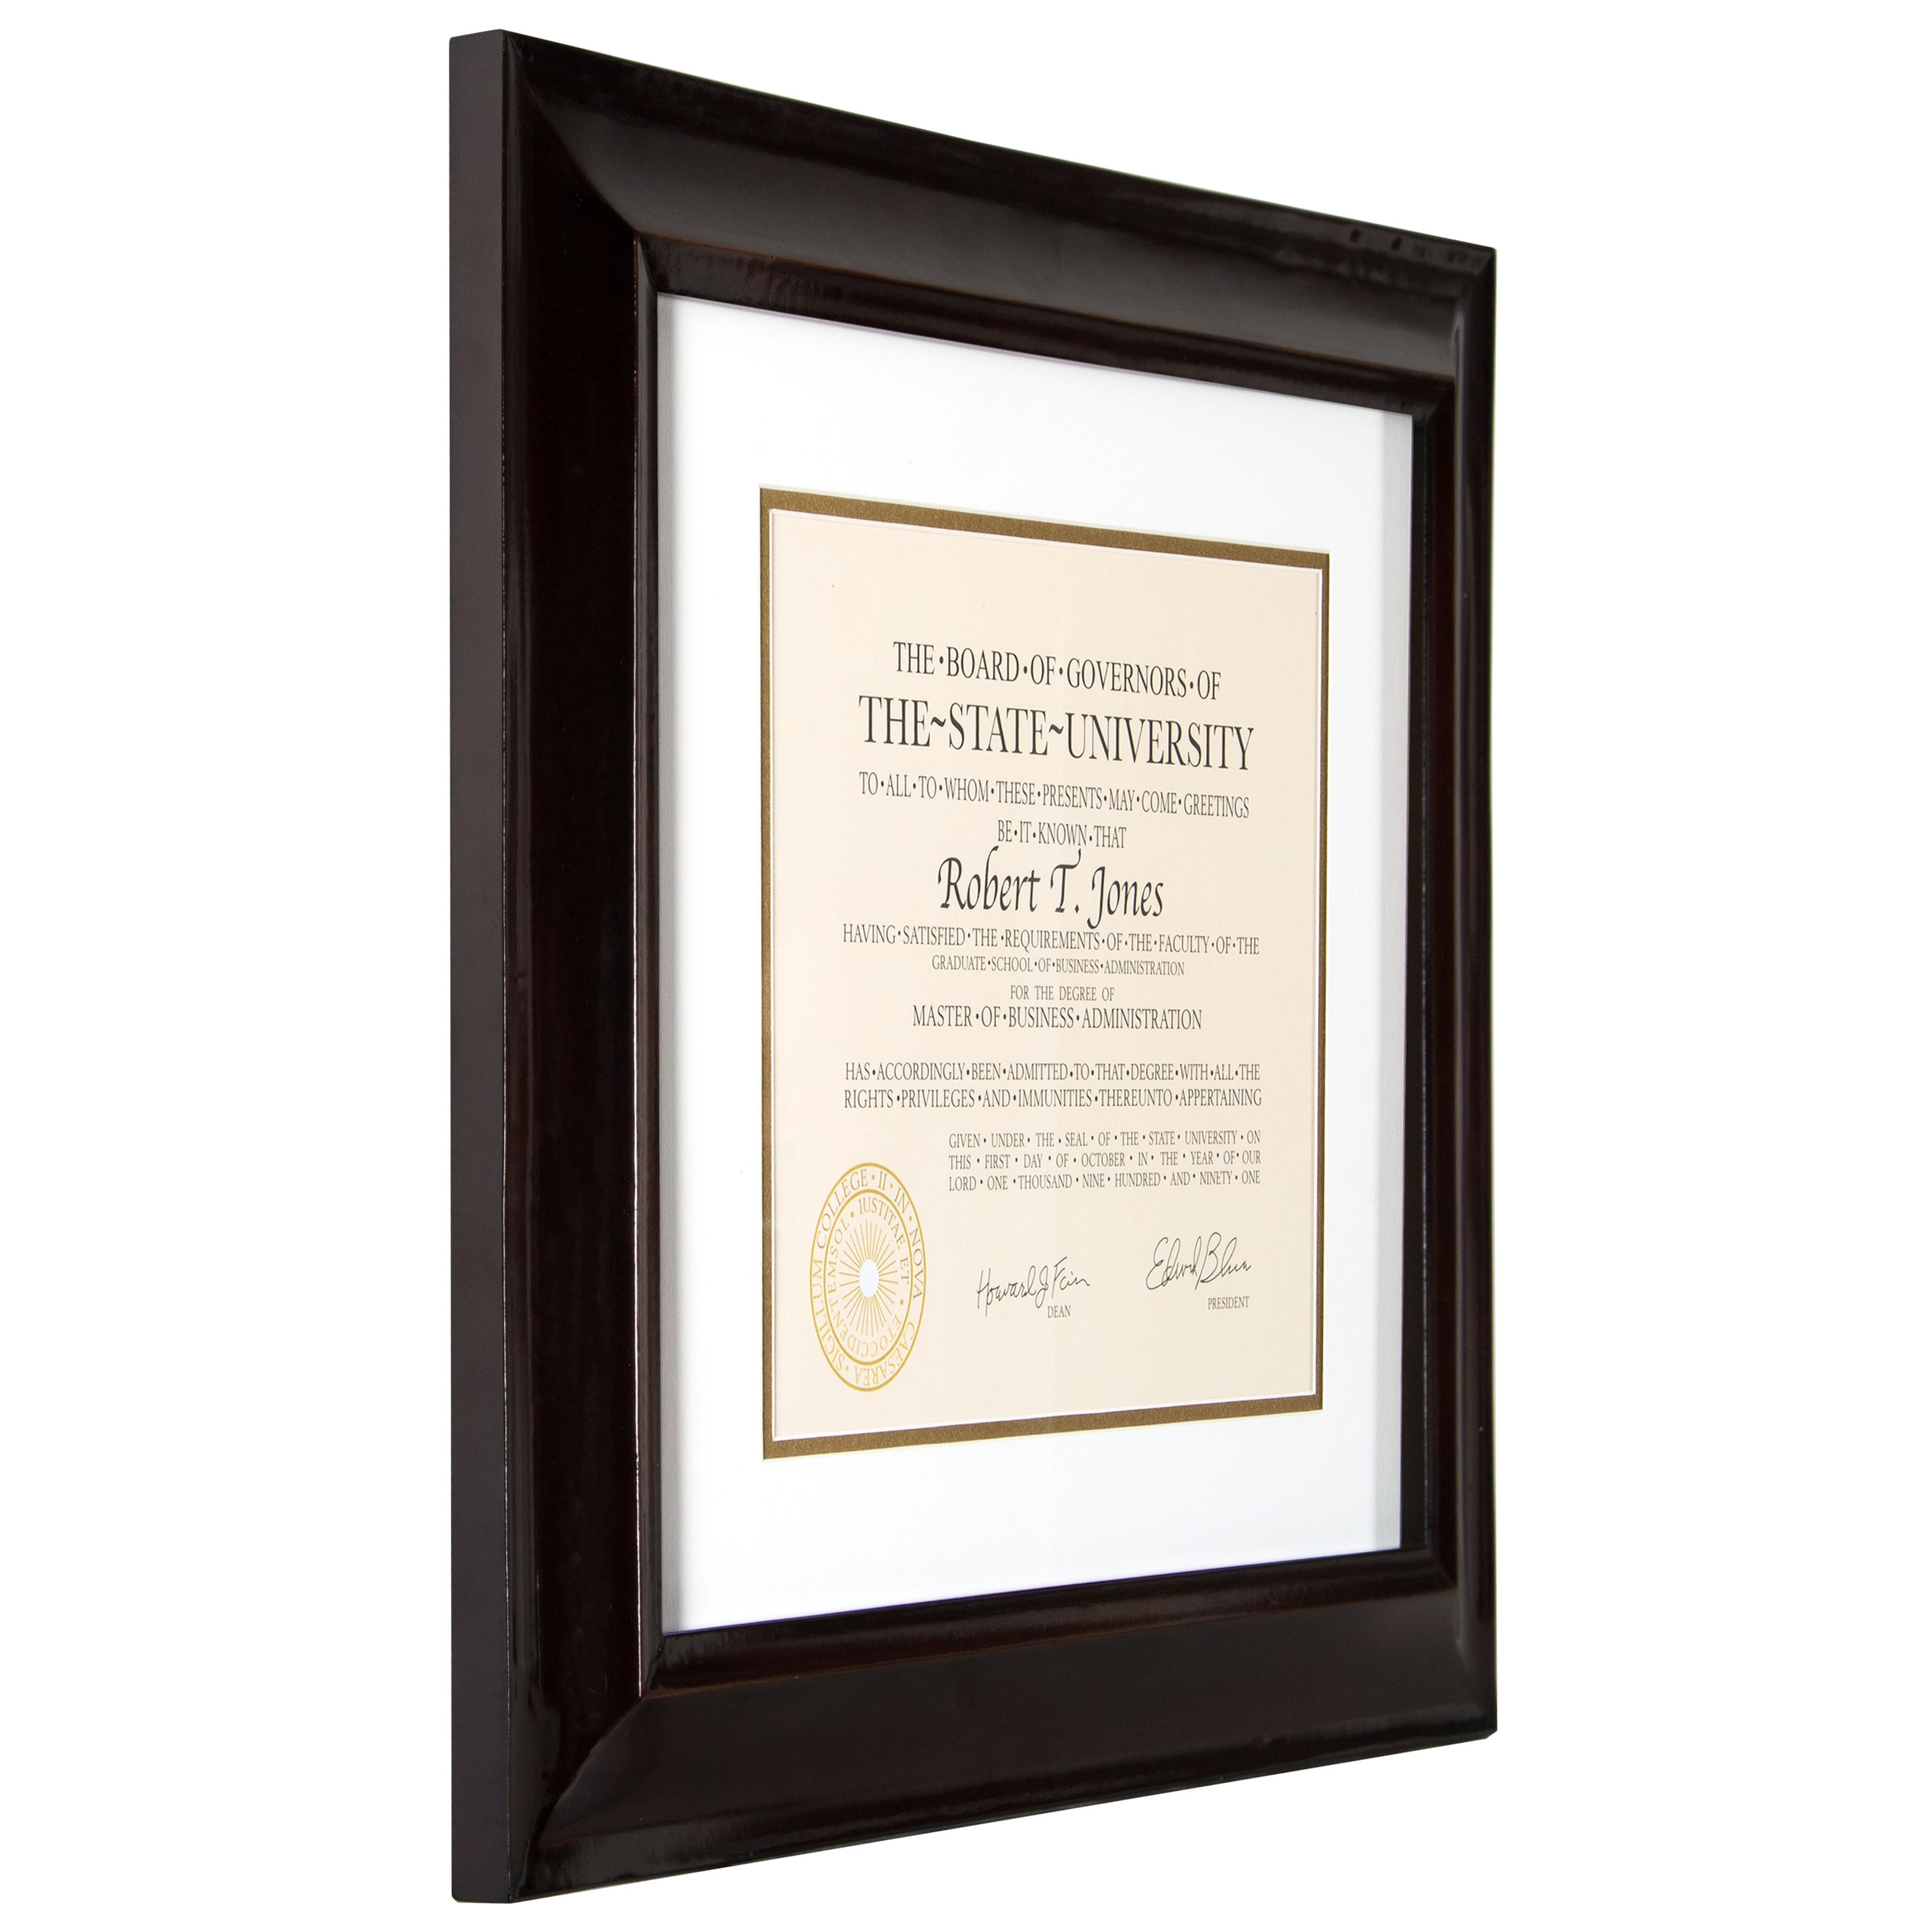 Artcare hampton walnut wood 12 inch x 15 inch document frame artcare hampton walnut wood 12 inch x 15 inch document frame free shipping on orders over 45 overstock 19002054 jeuxipadfo Images